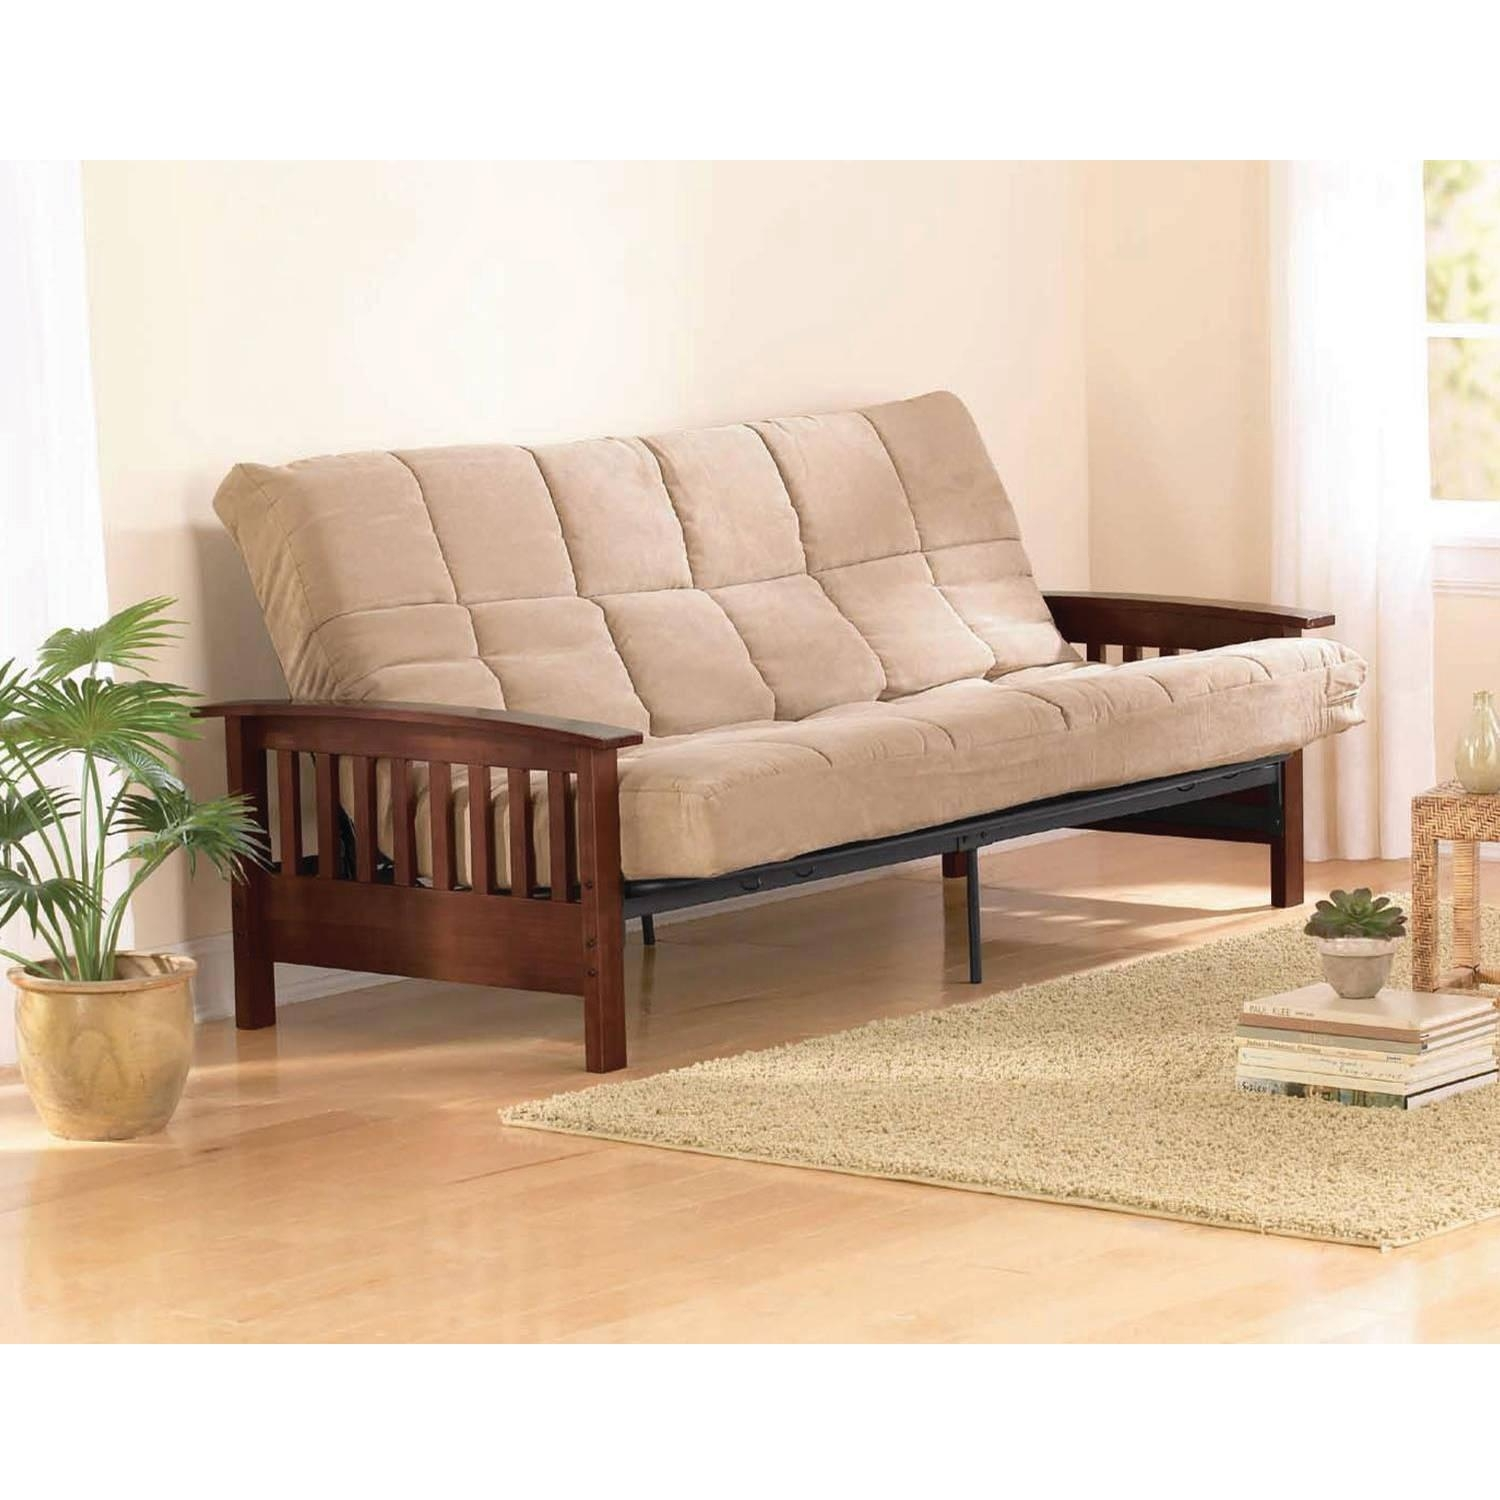 Coaster Company Black Accent Lounge Chair Futon Sofa Bed – Walmart With Regard To Convertible Sofa Chair Bed (View 6 of 20)